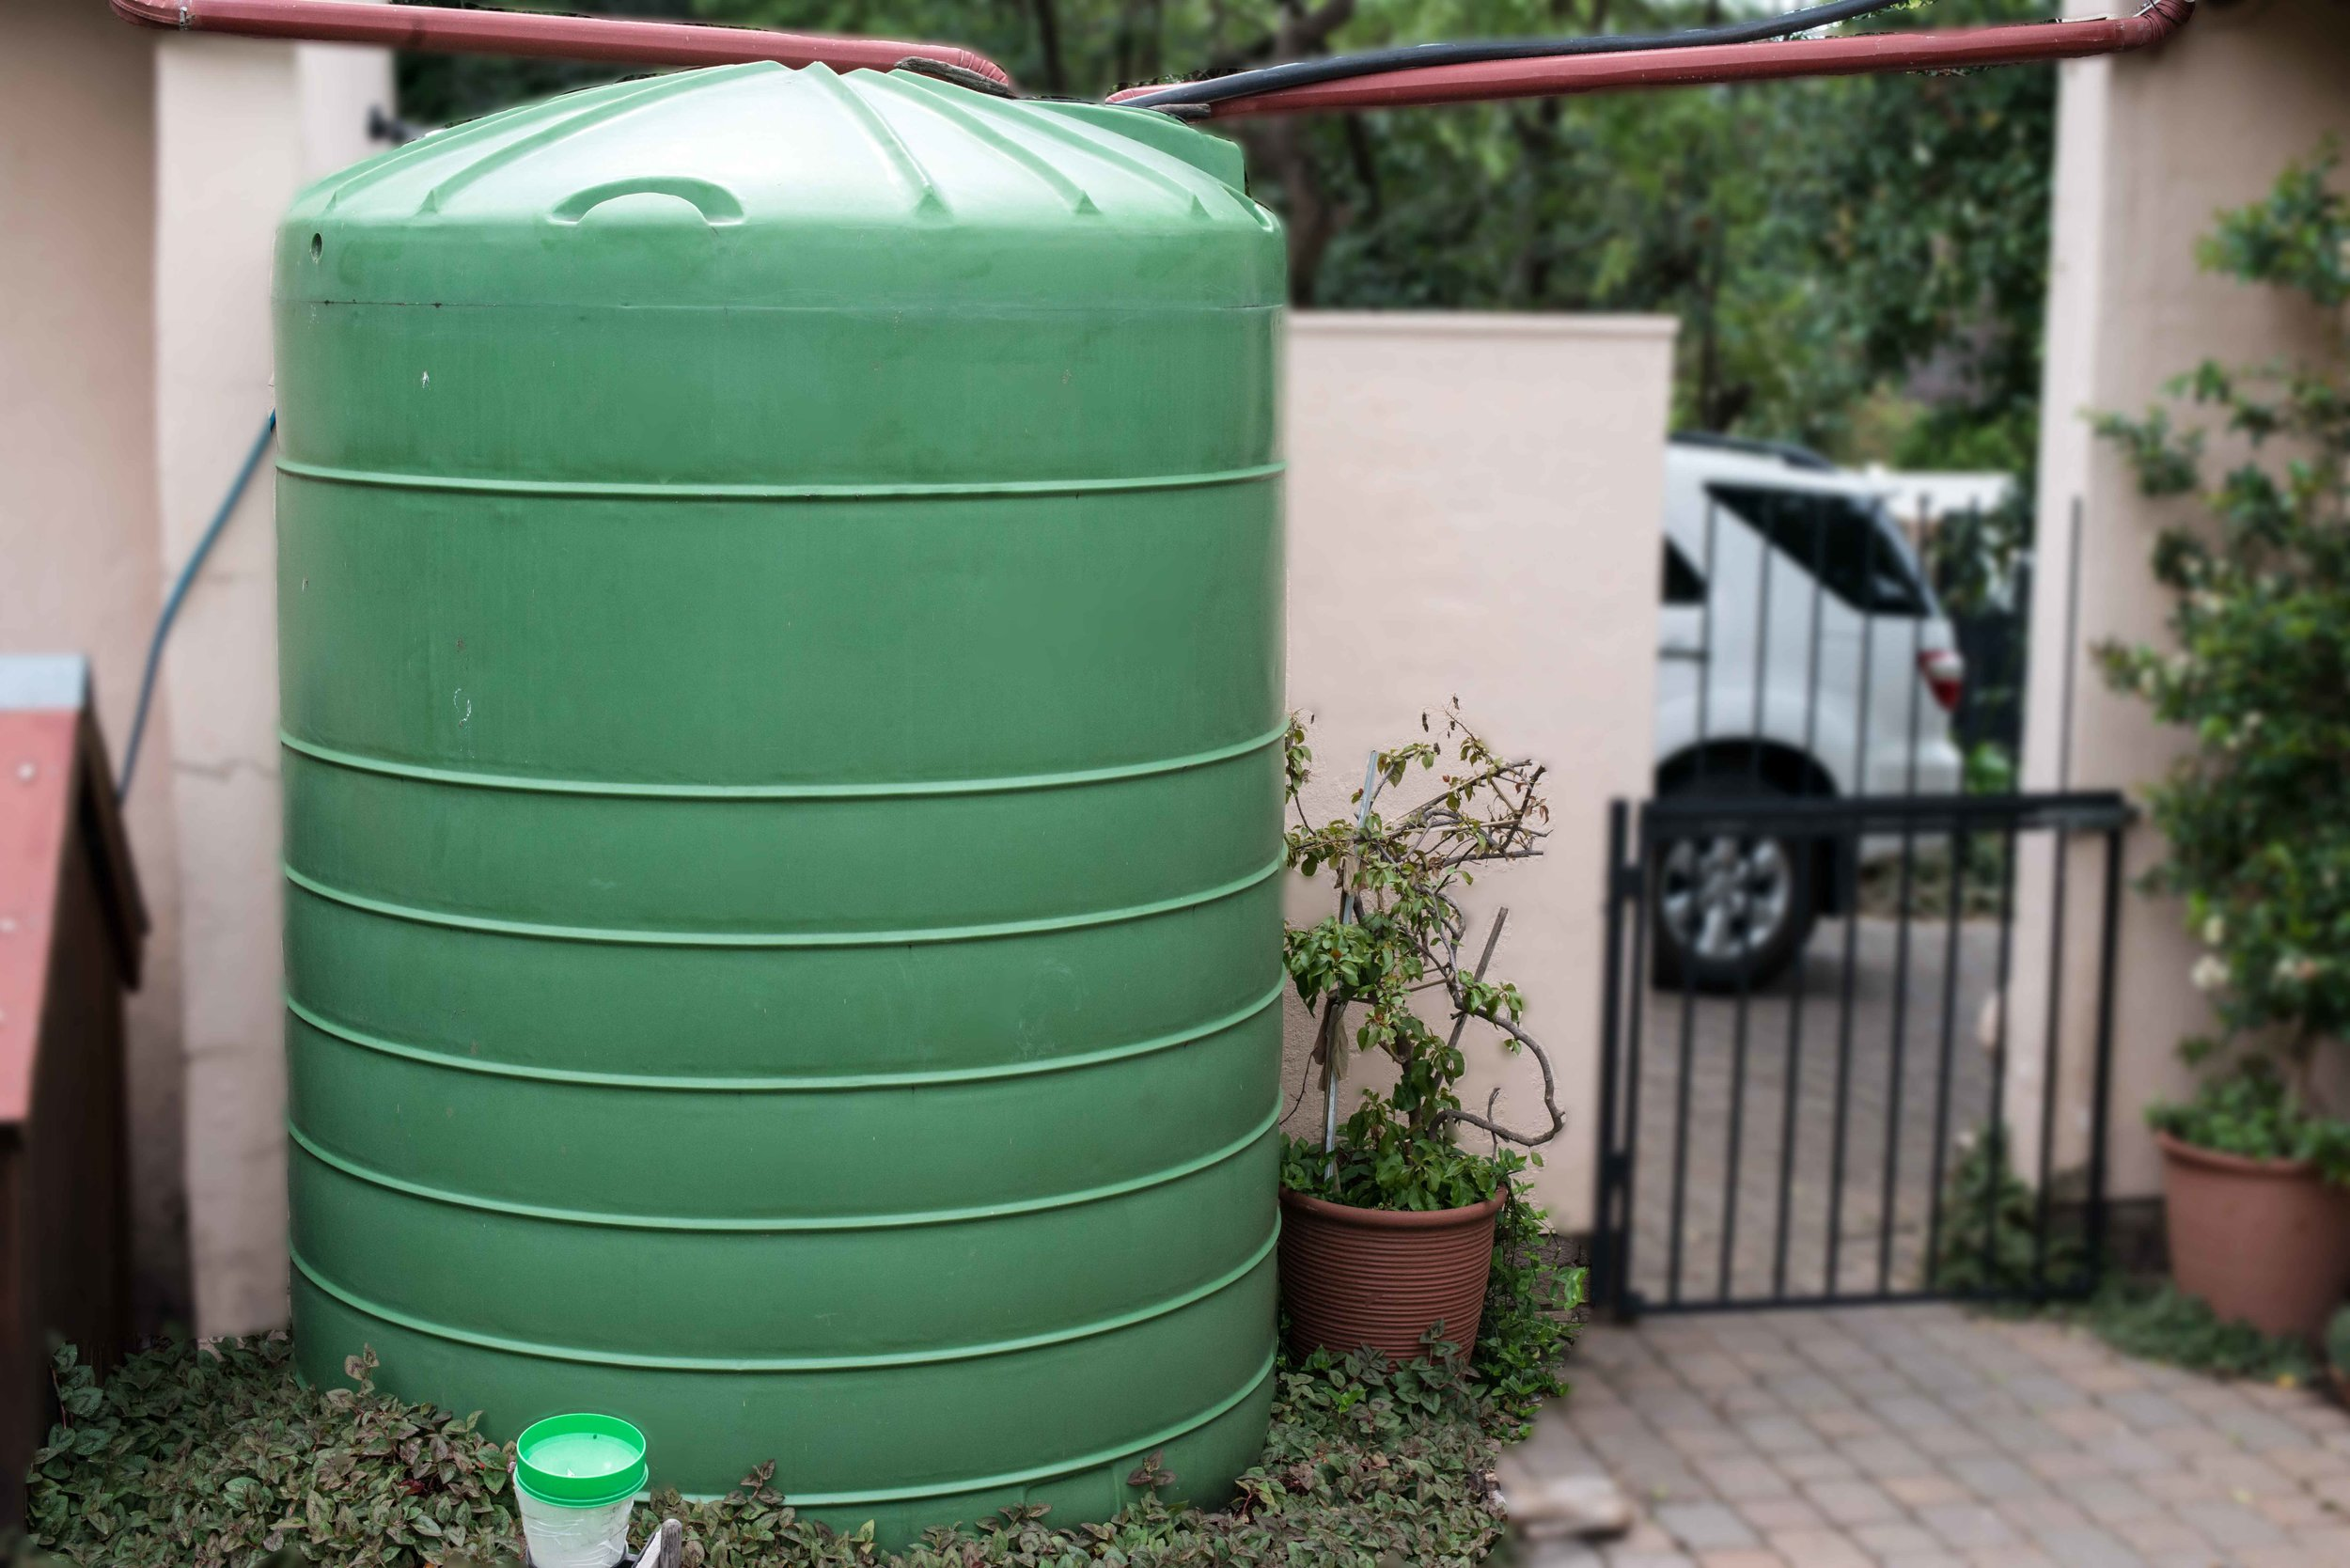 Supplement borehole water with rainwater harvesting